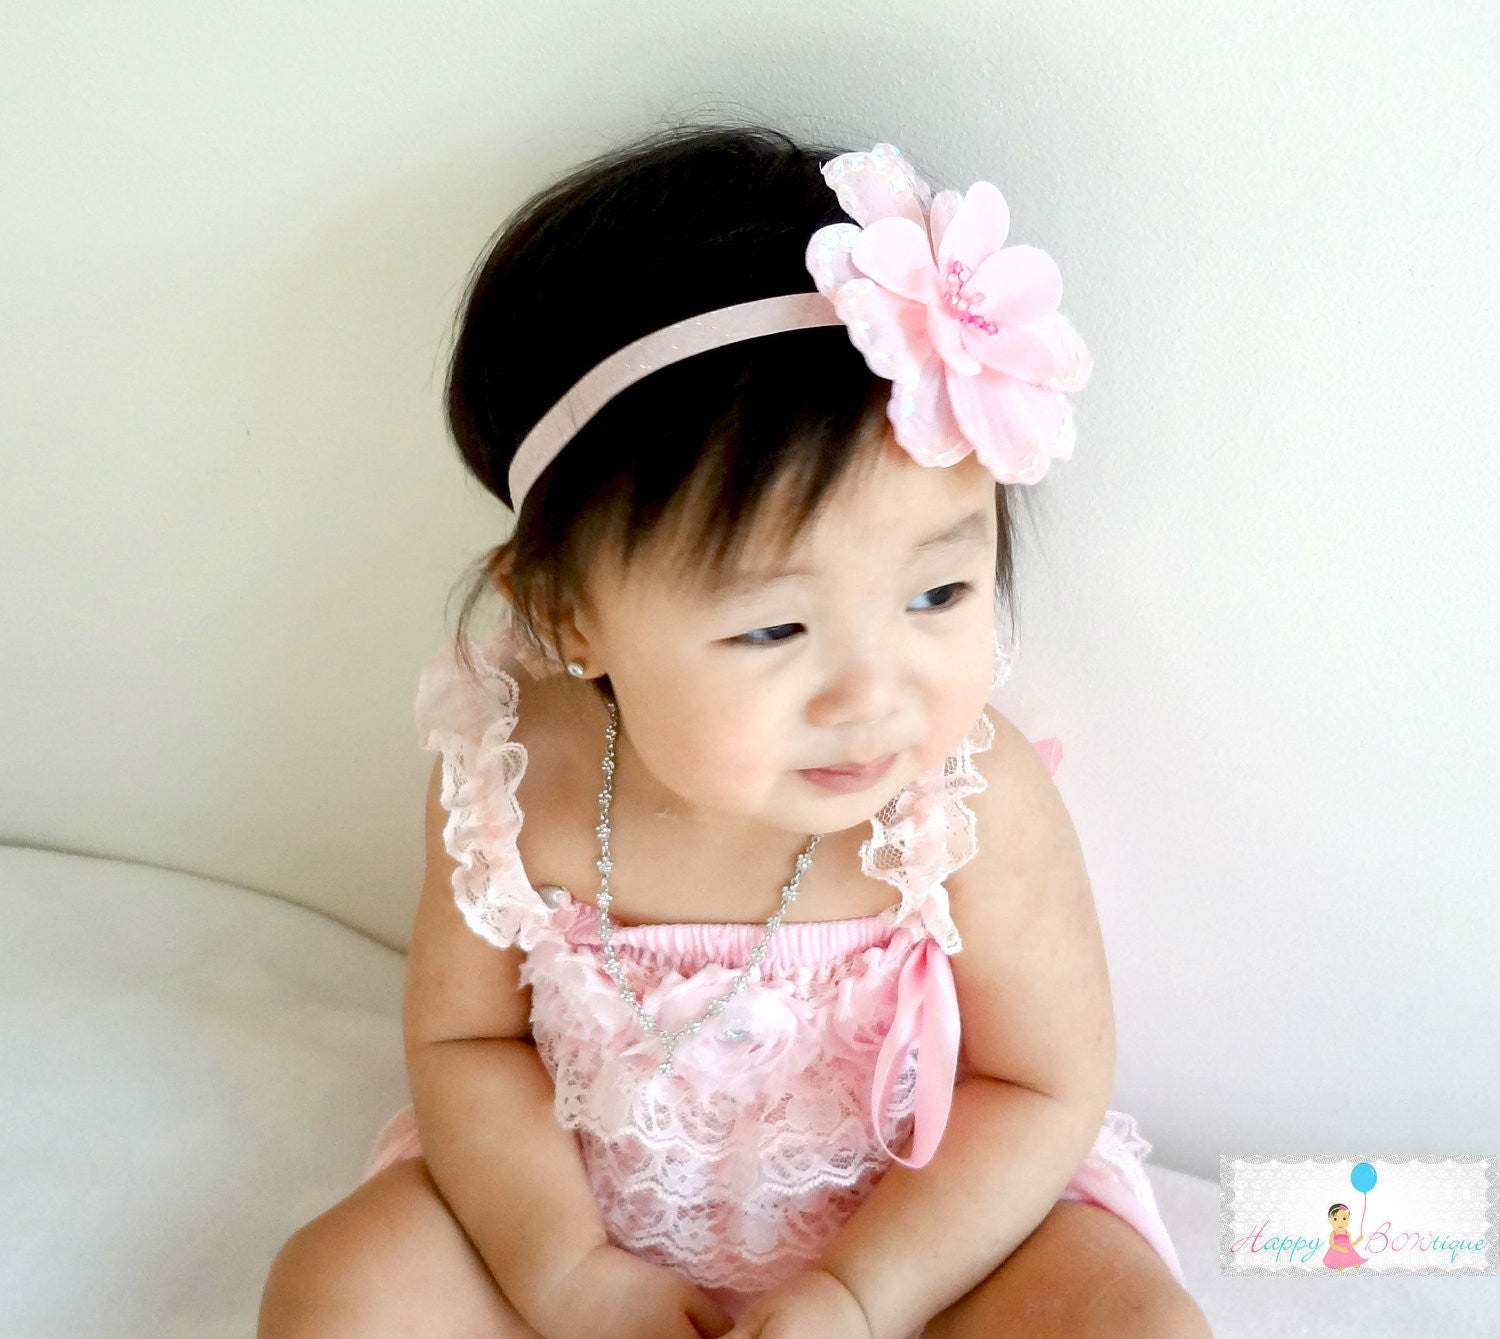 Baby Pink Large Sequin Silk Flowers headband - Happy BOWtique - children's clothing, Baby Girl clothing